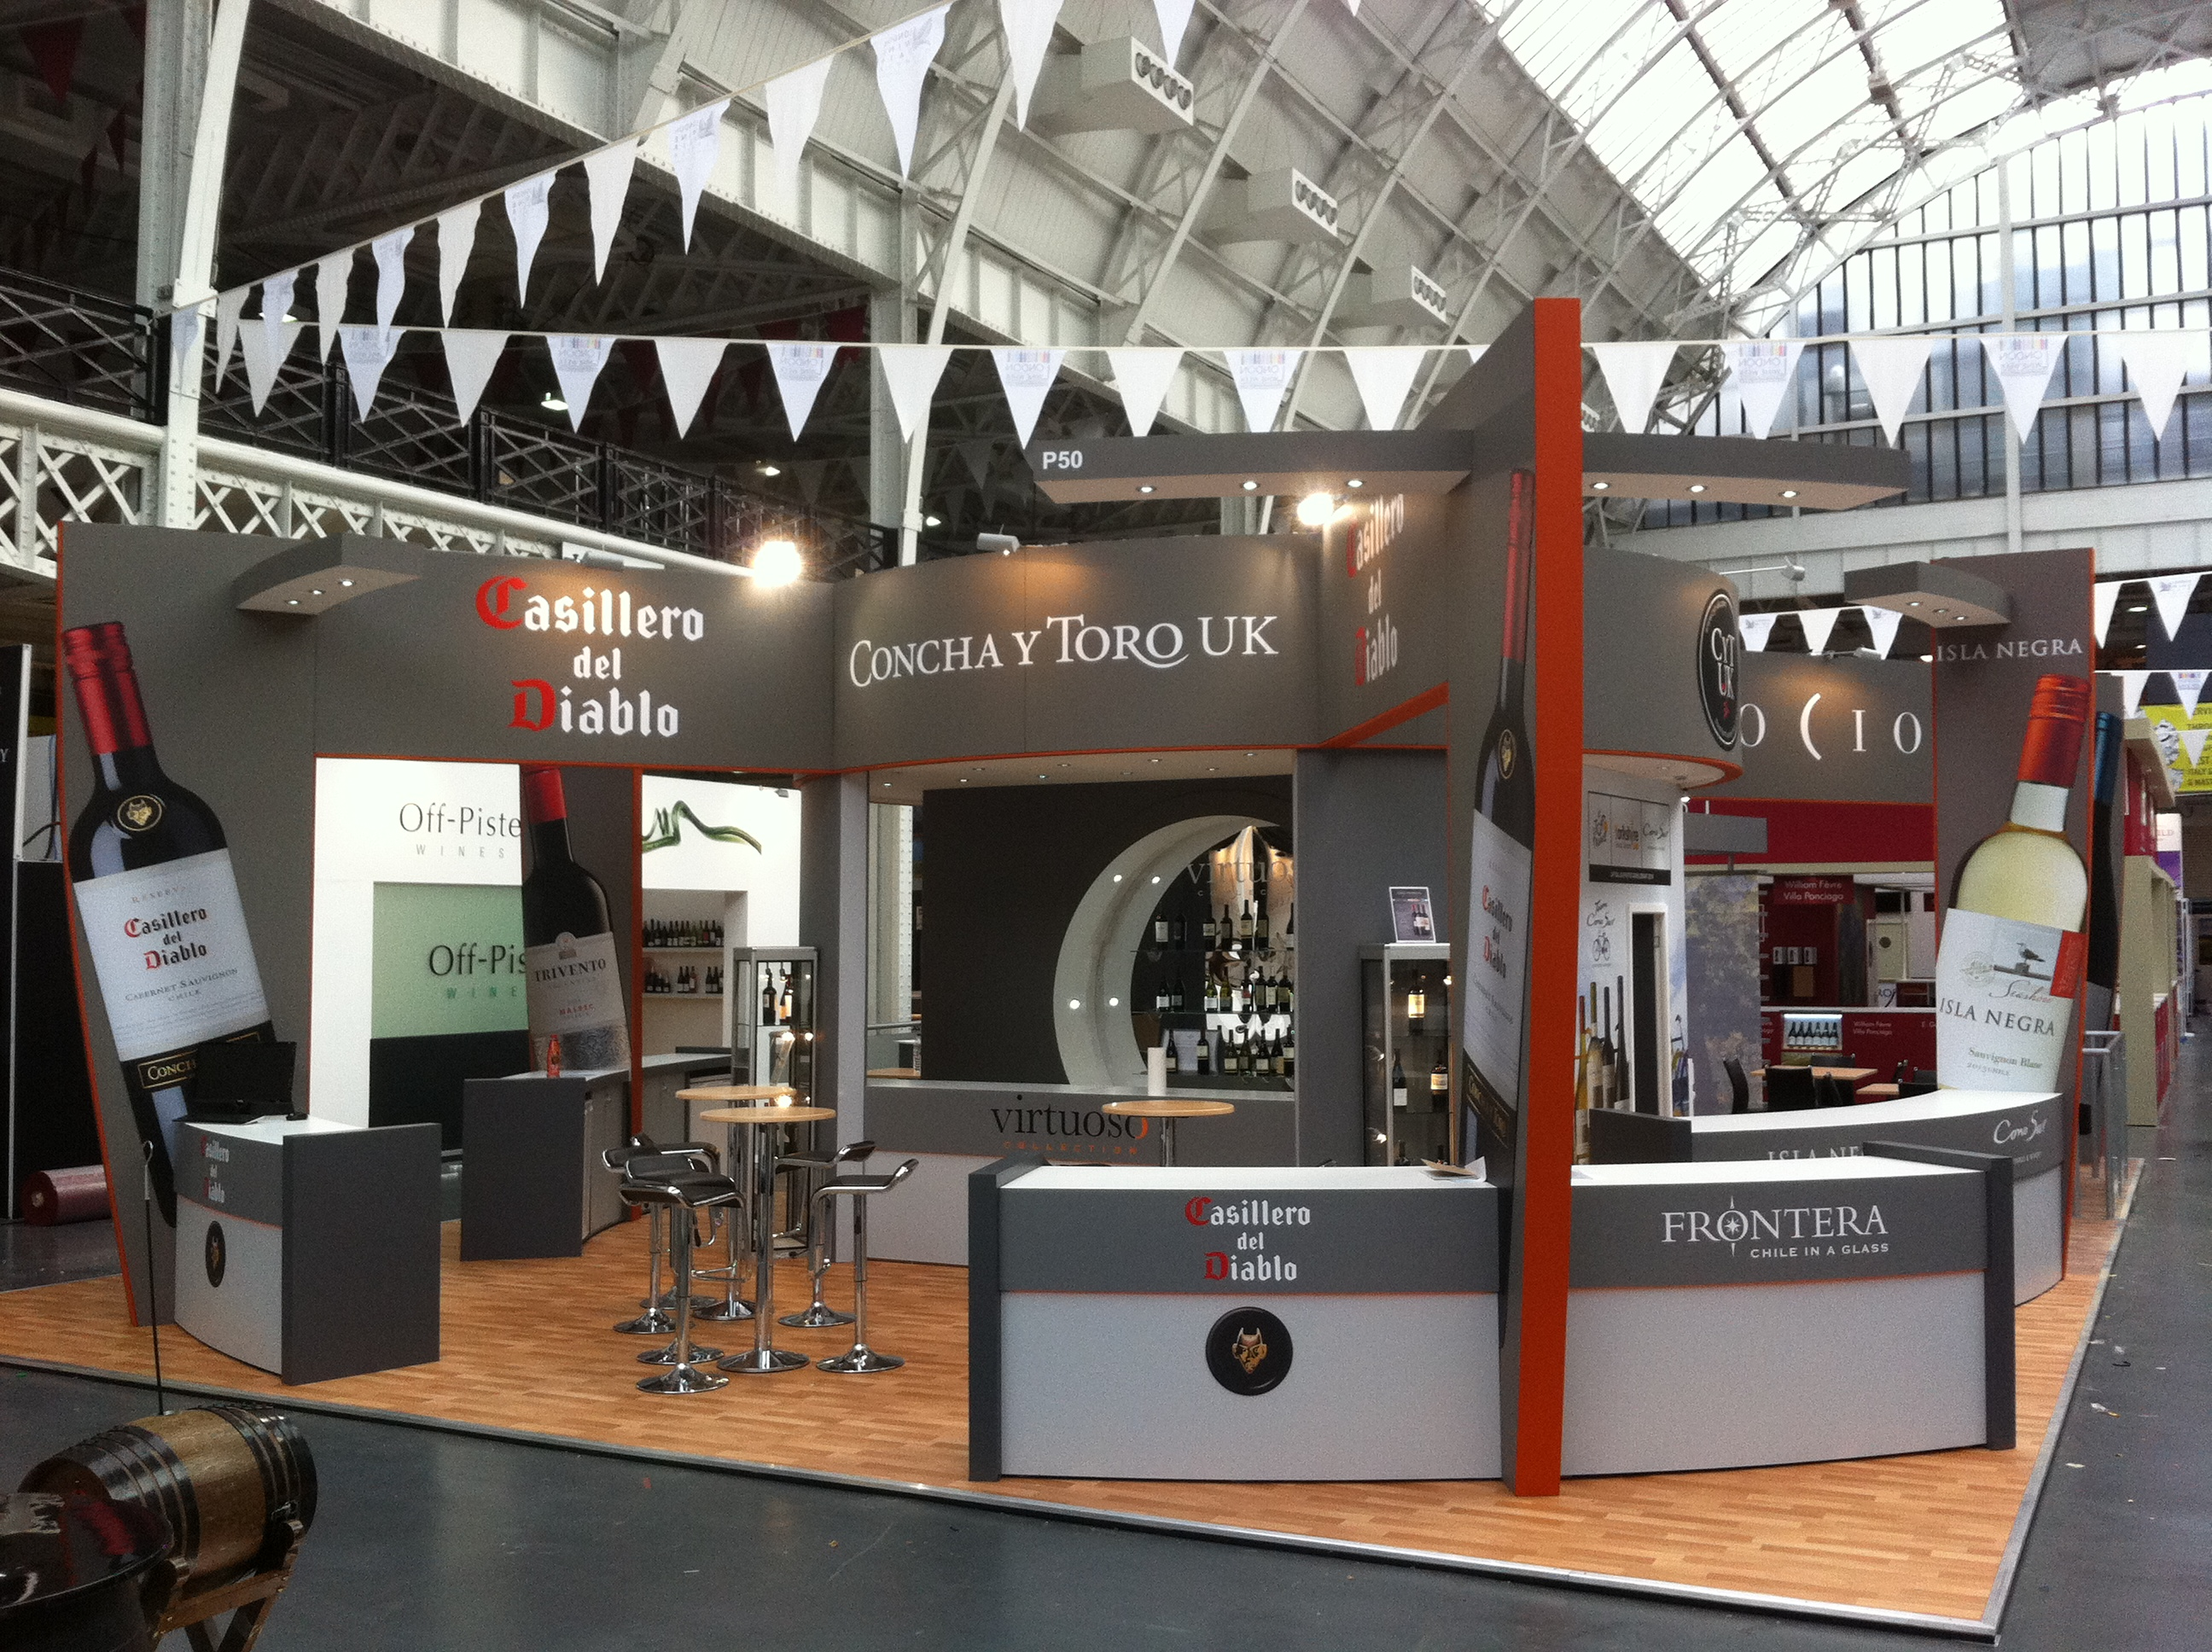 Choosing the right size exhibition stand for you